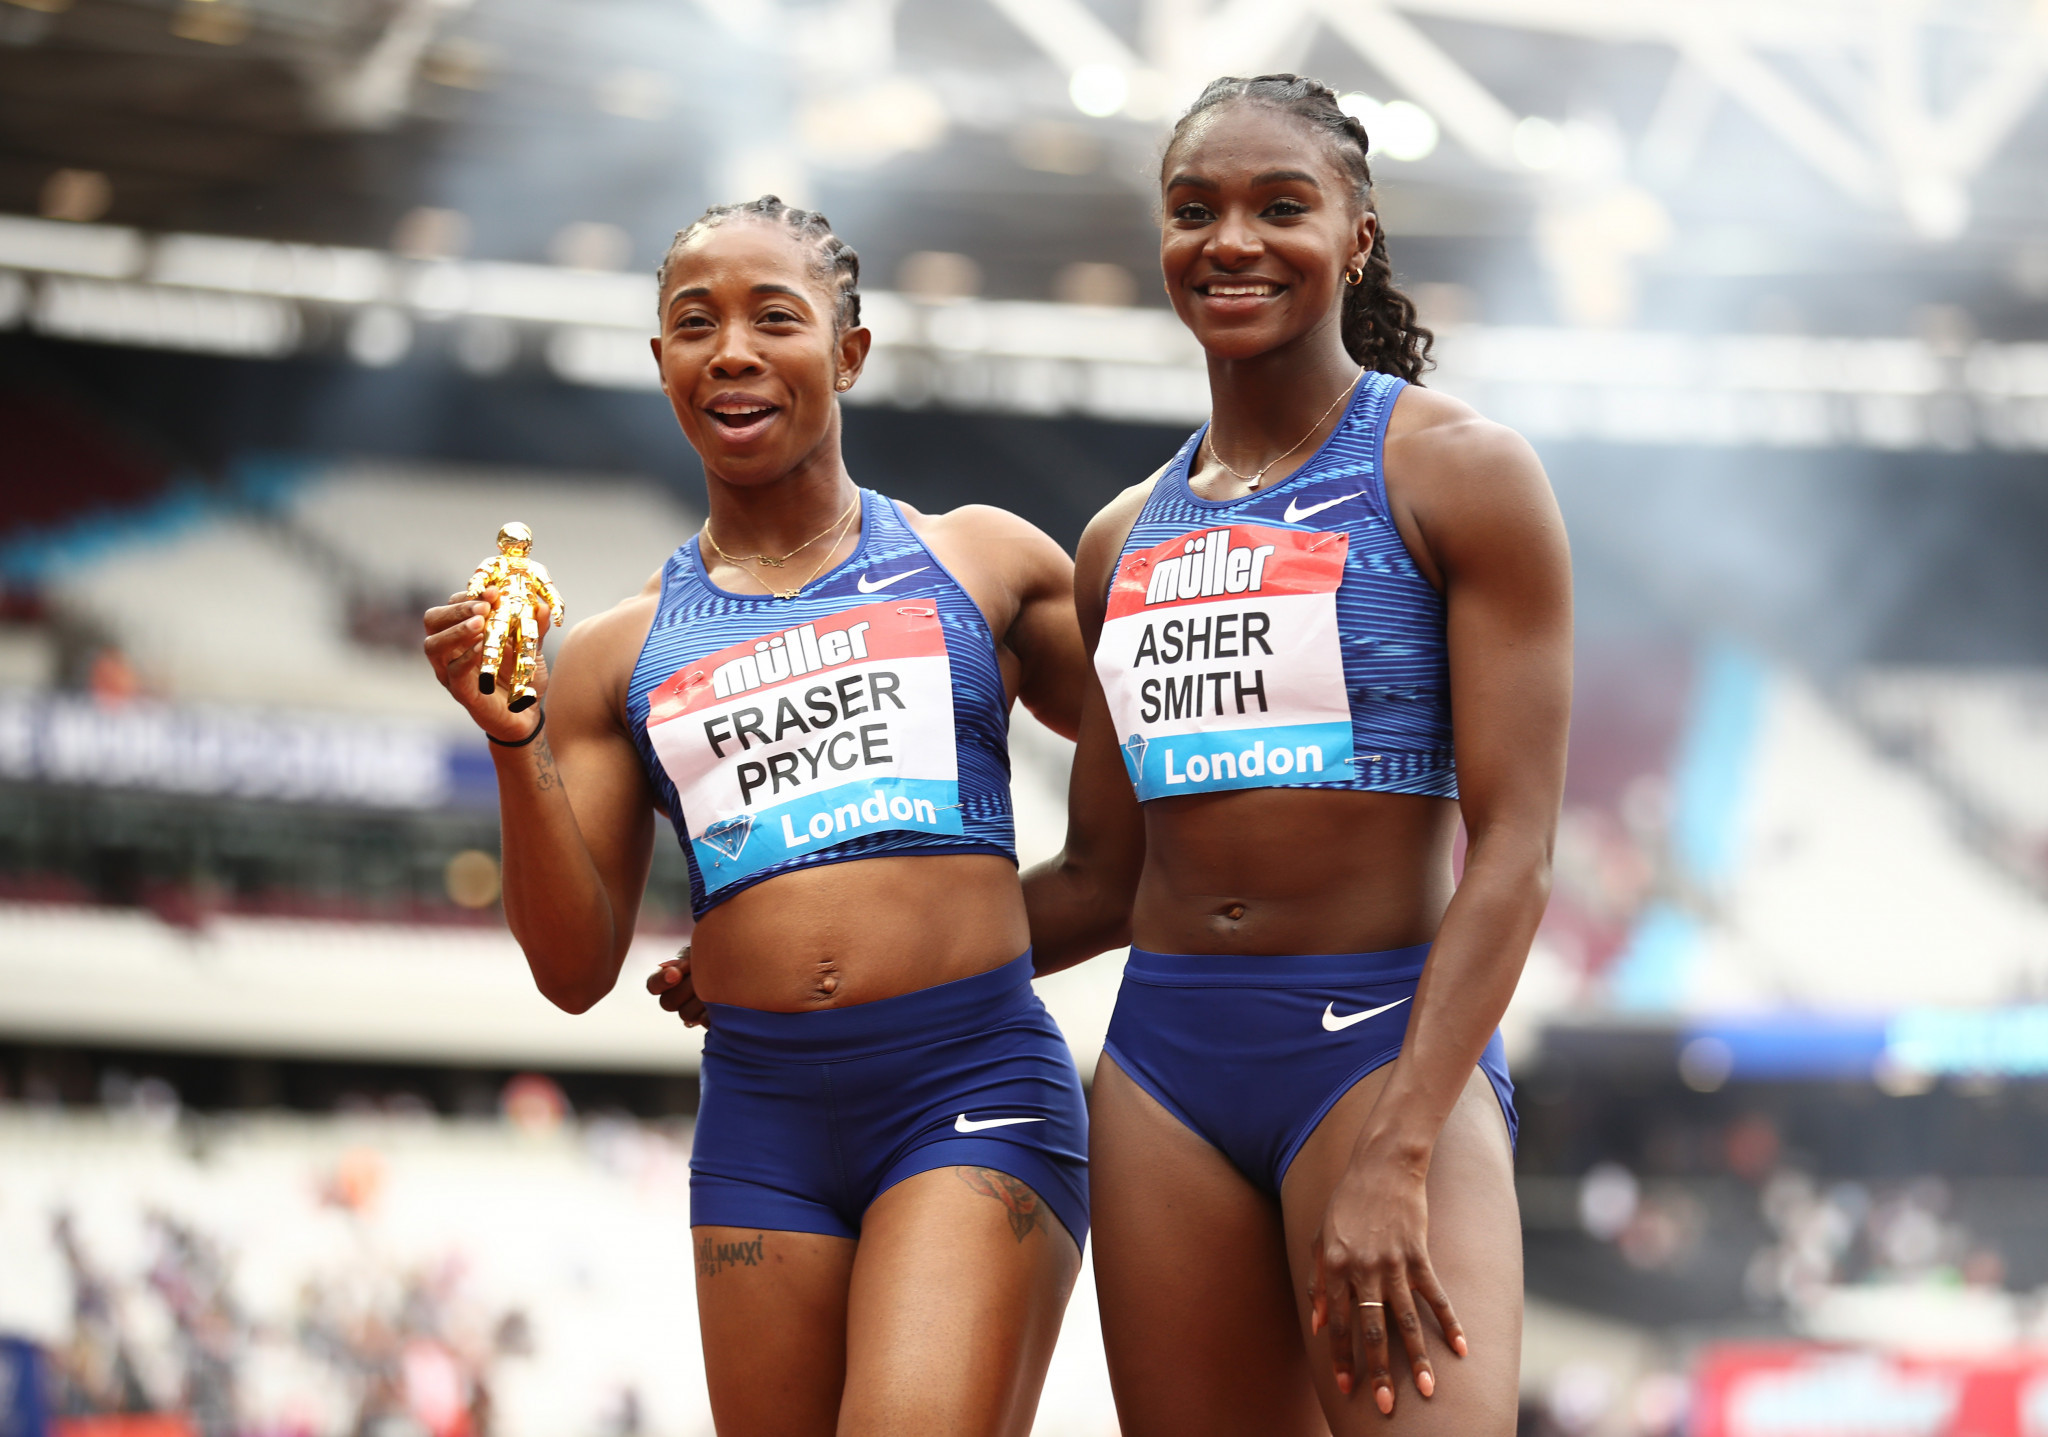 Athletics' top stars were set to compete at the Anniversary Games in July ©Getty Images